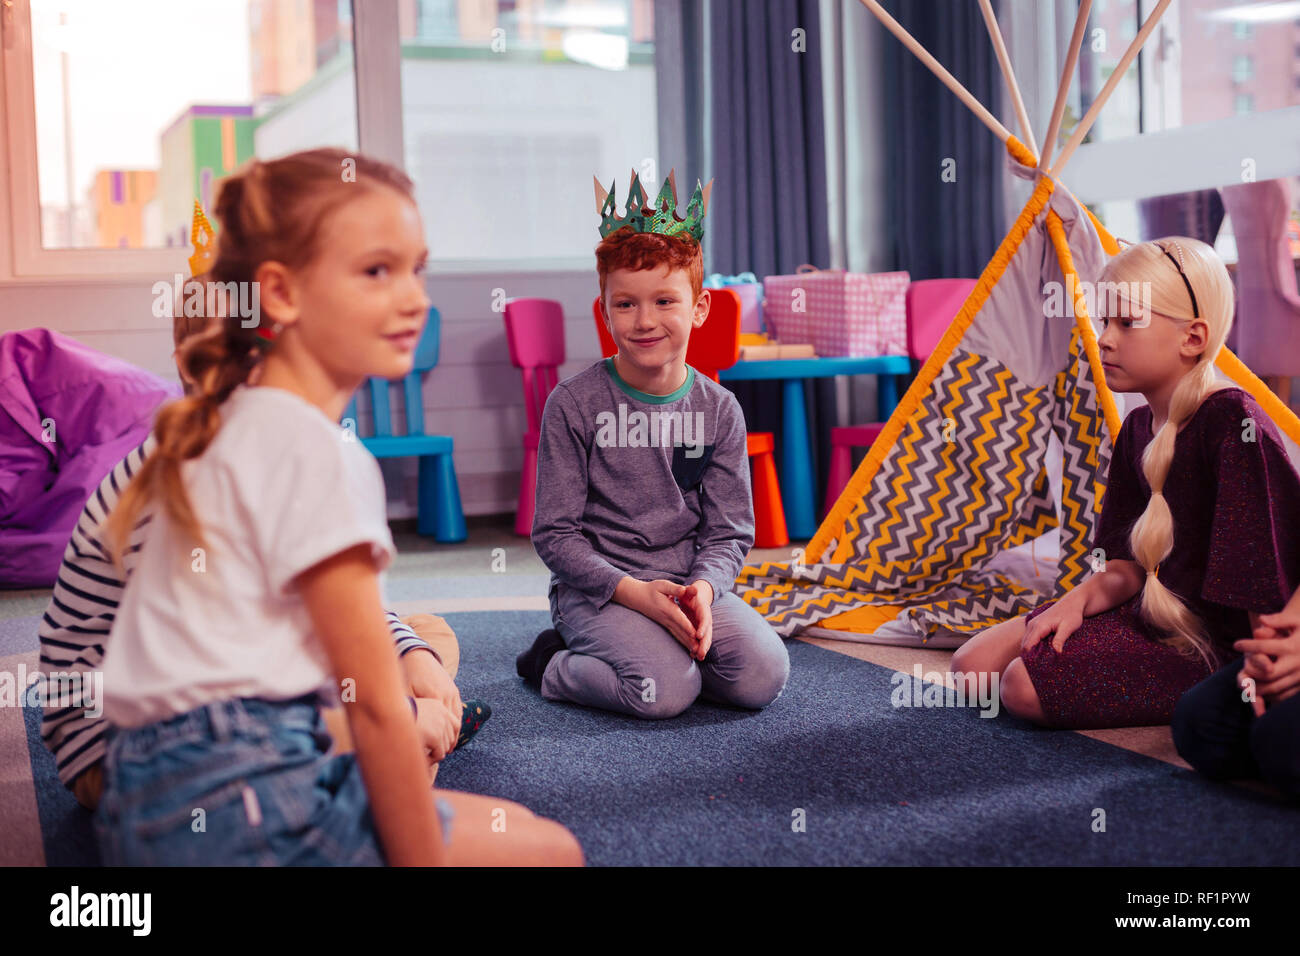 Pleased boy wearing paper crown during playing - Stock Image